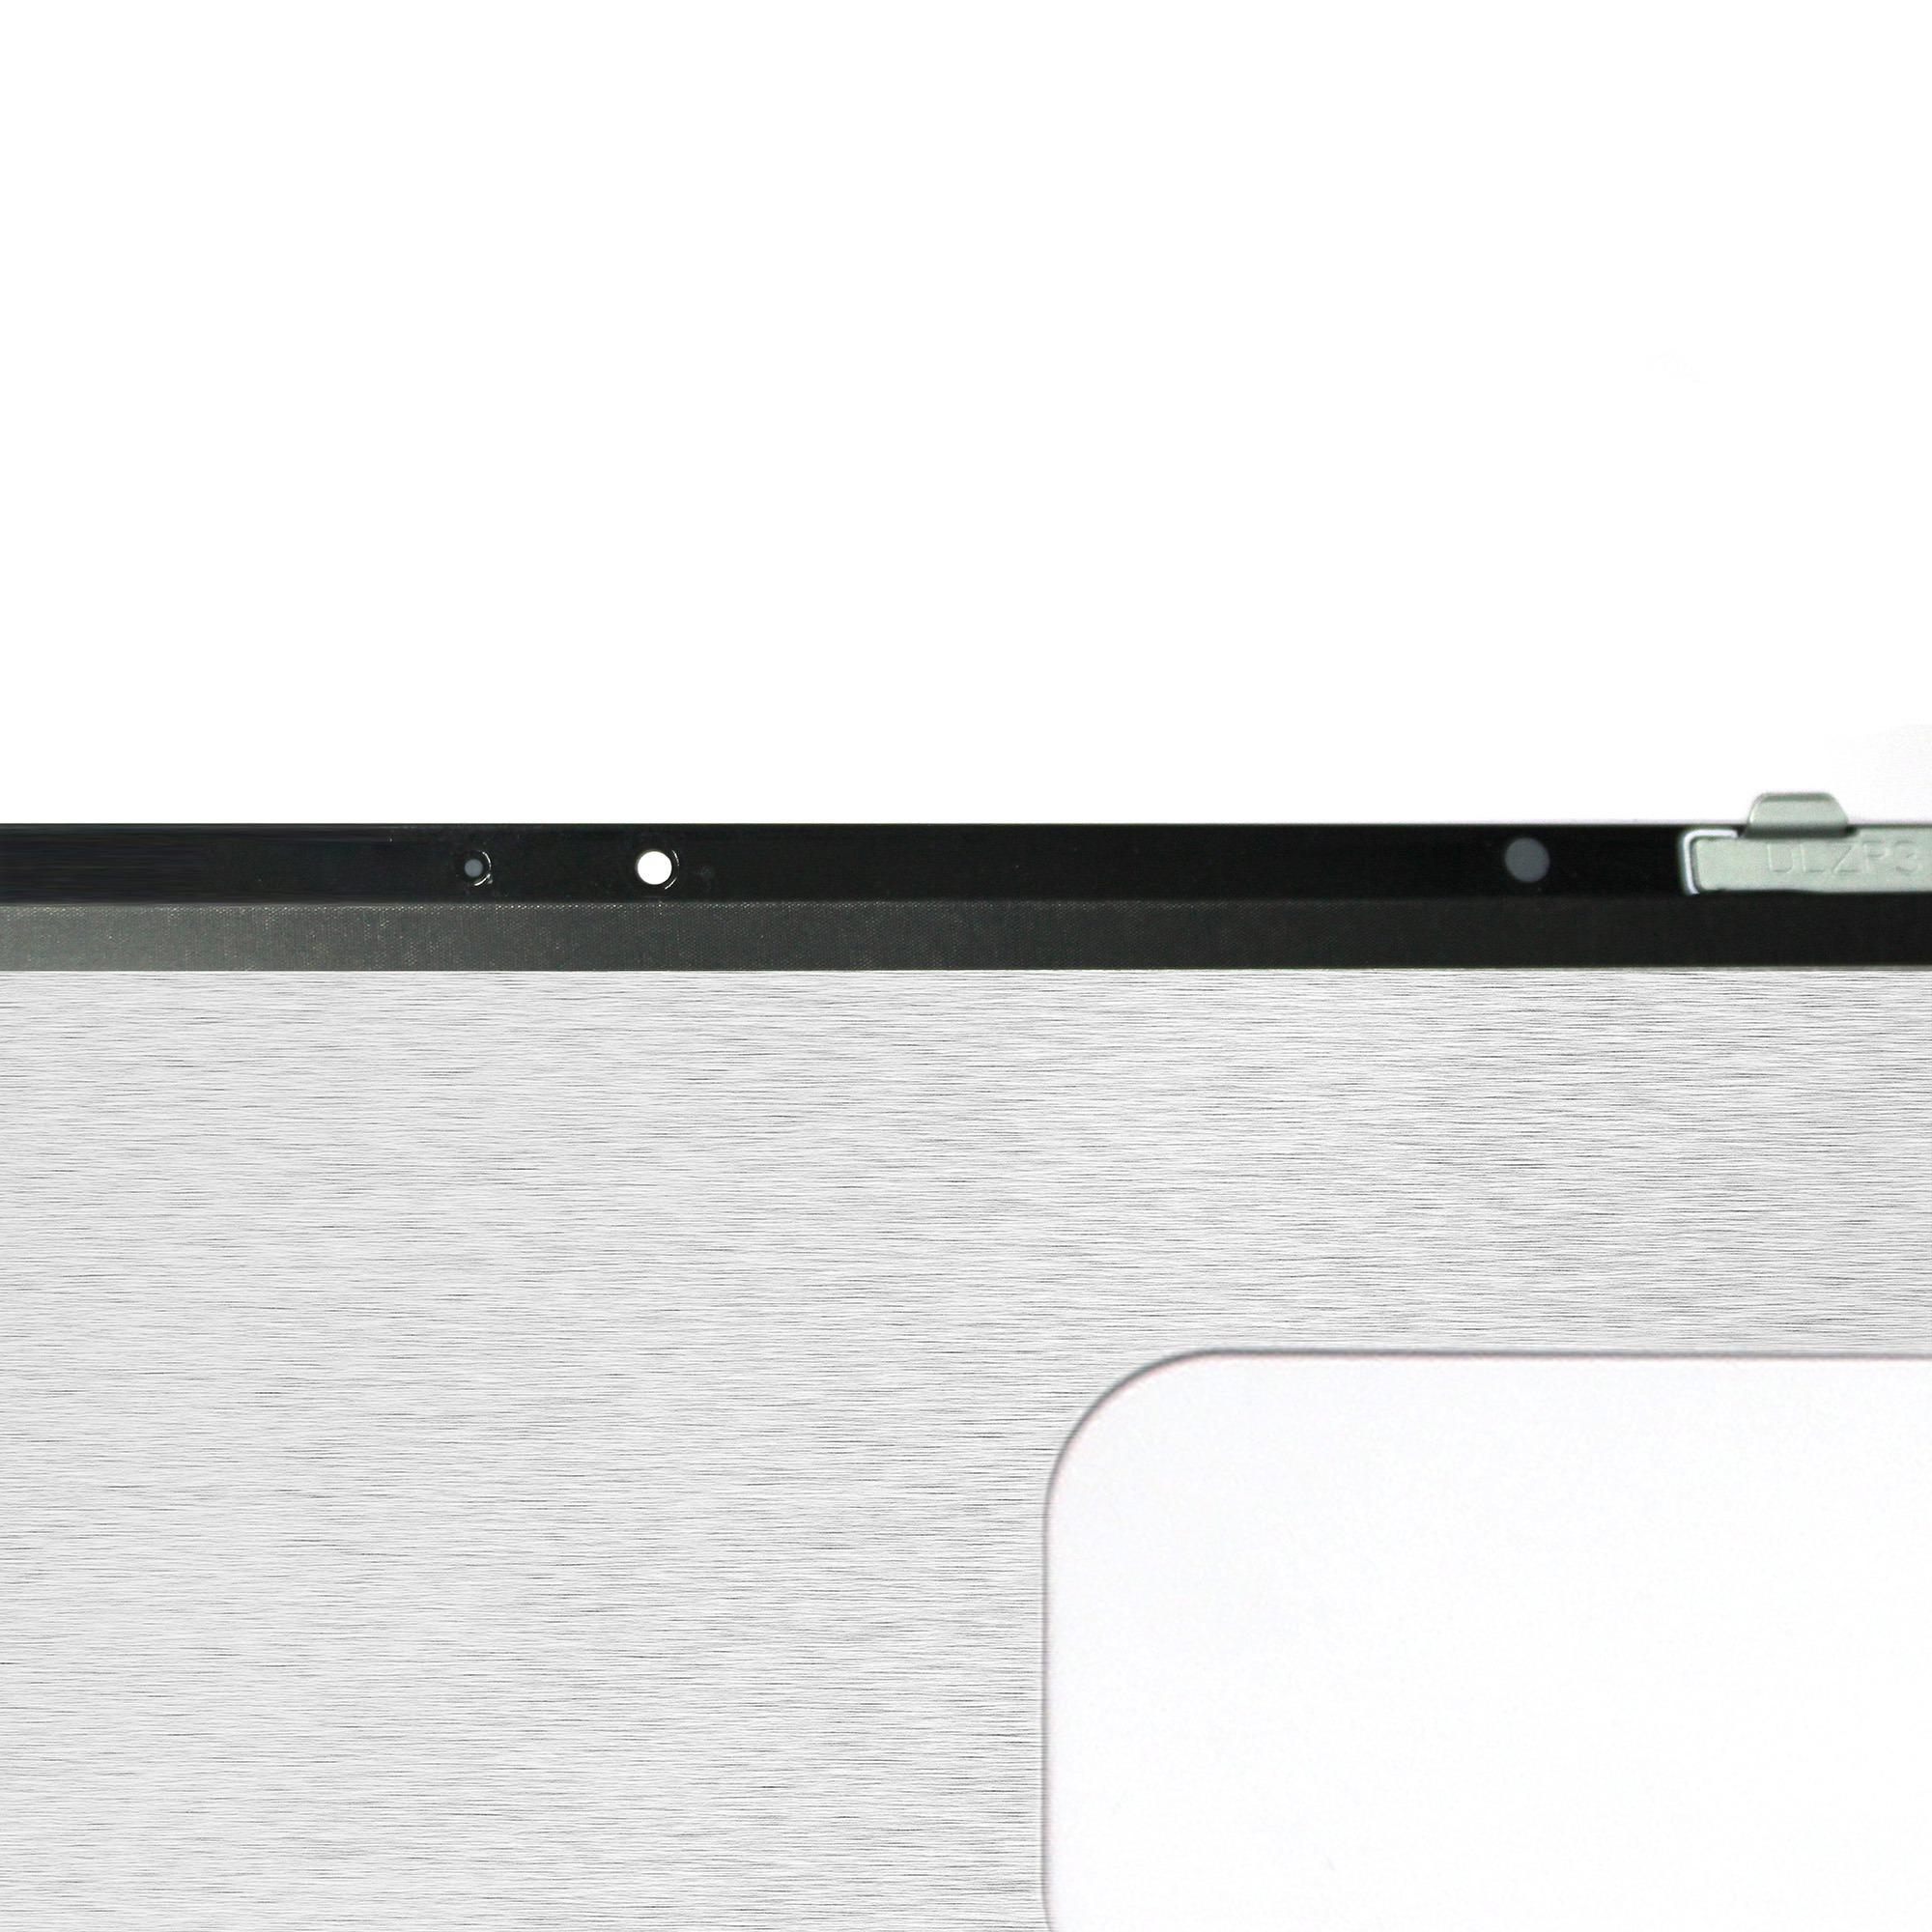 Image 3 - New LCD Display Matrix Touch Screen Digitizer Assembly For Lenovo Yoga 730 13IKB 81CT0008US 81CT000BFR 81CT000DFR 81CT0023GELaptop LCD Screen   -